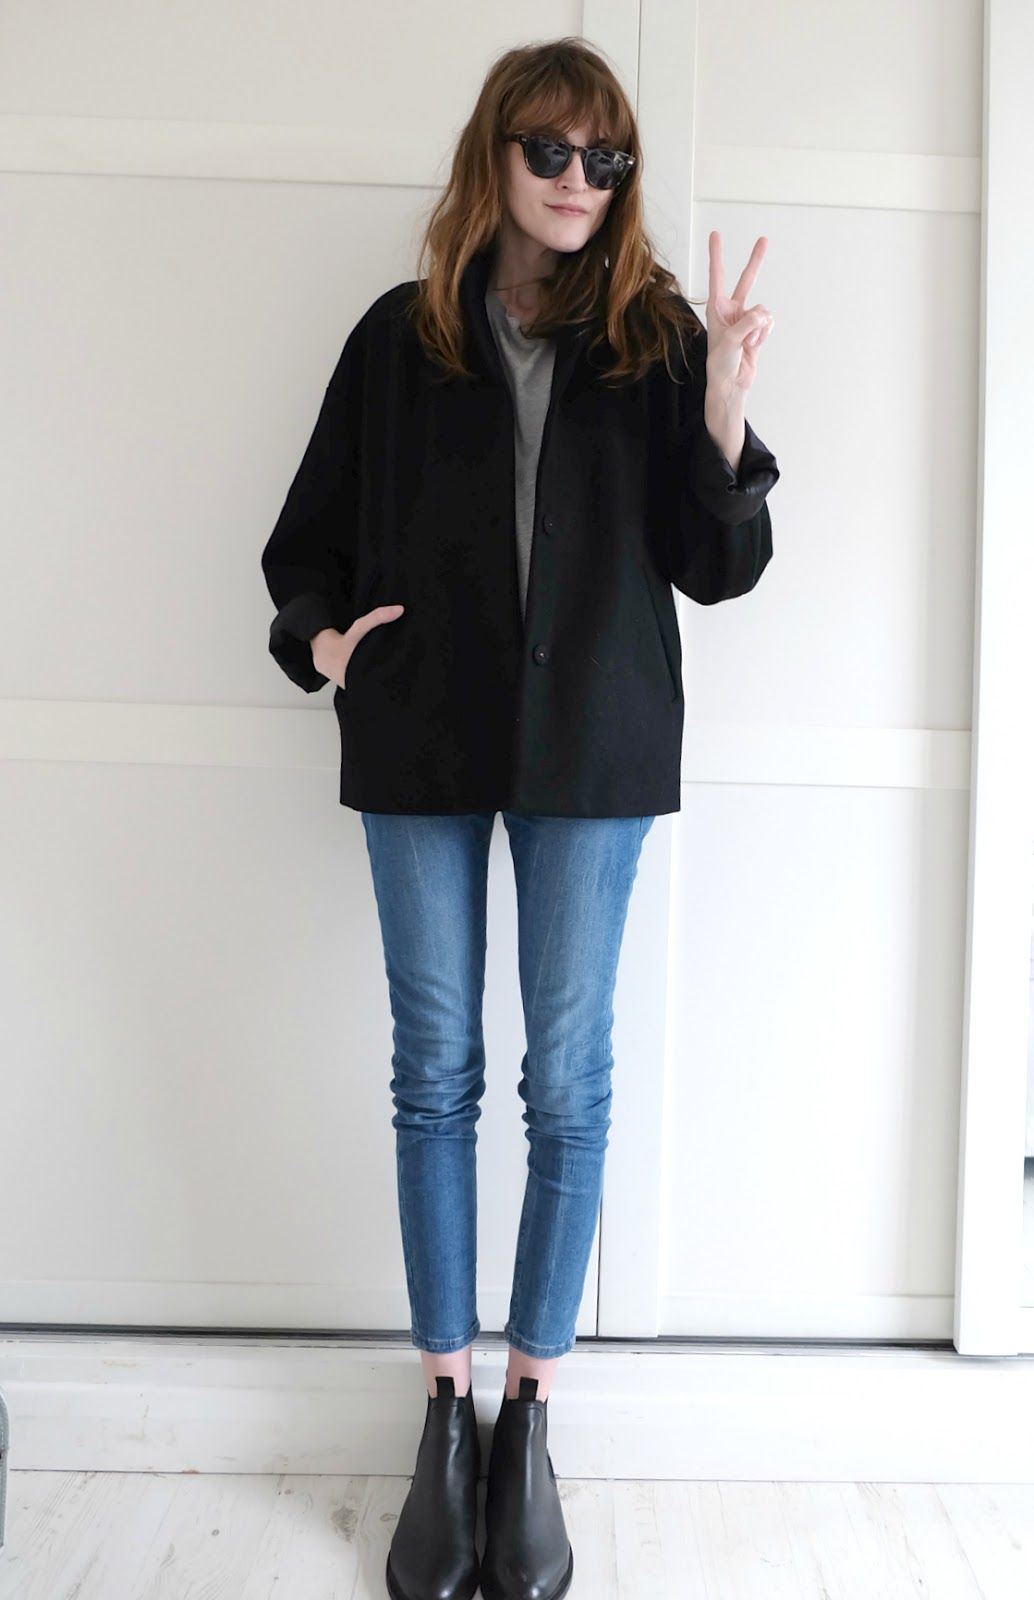 FASHION | Grey & Gold http://www.josies-journal.com/2015/05/asos-ridley-jeans-outfit.html